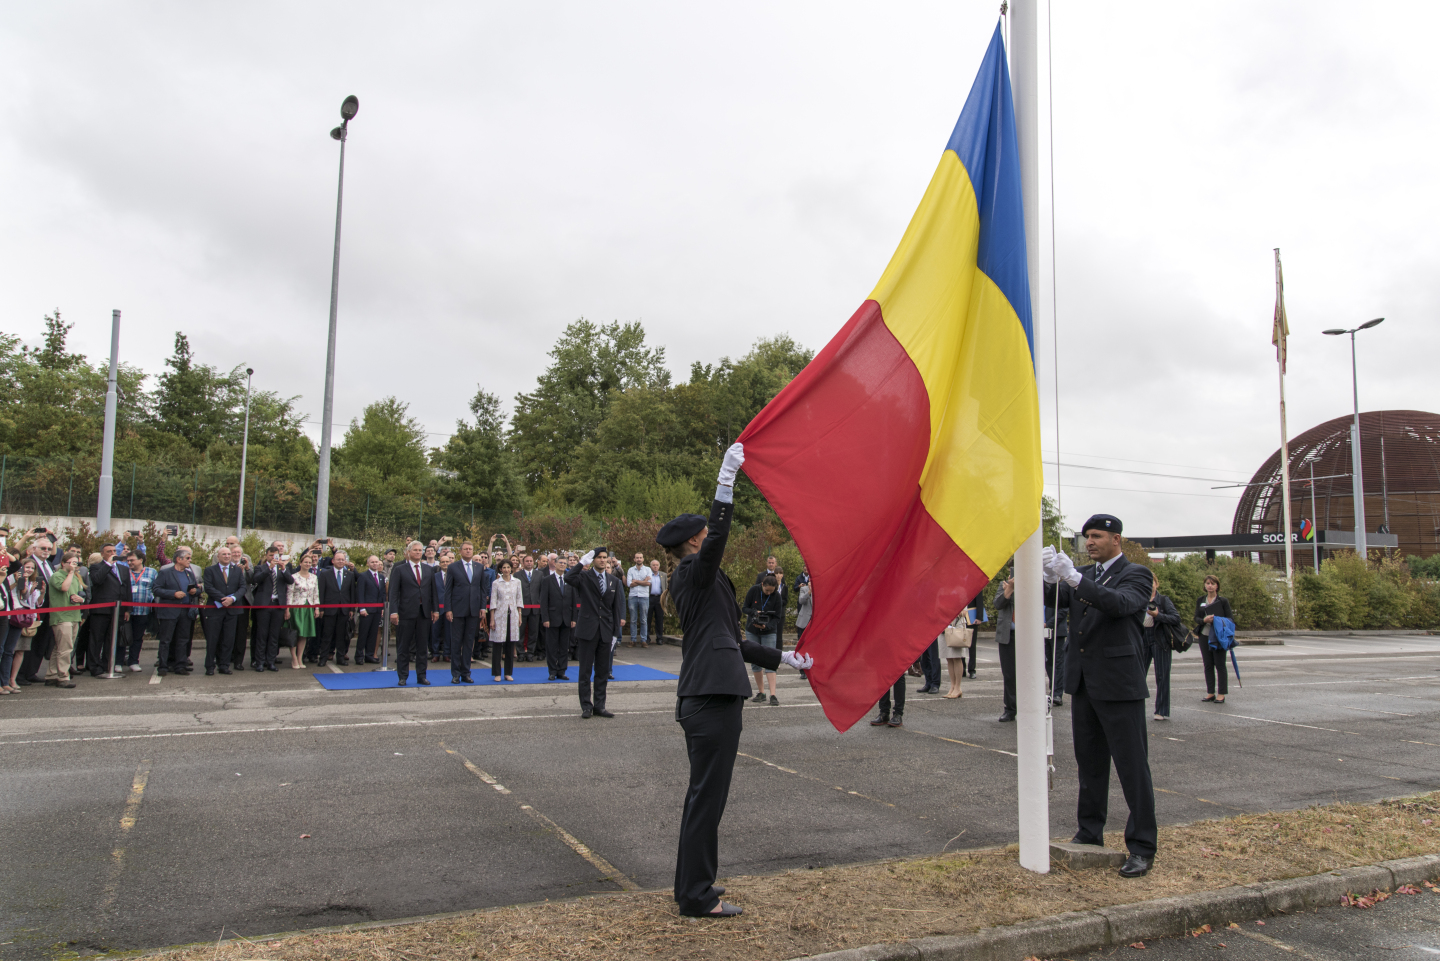 Romania,FLag,Drapeaux,member state,Personalities and History of CERN